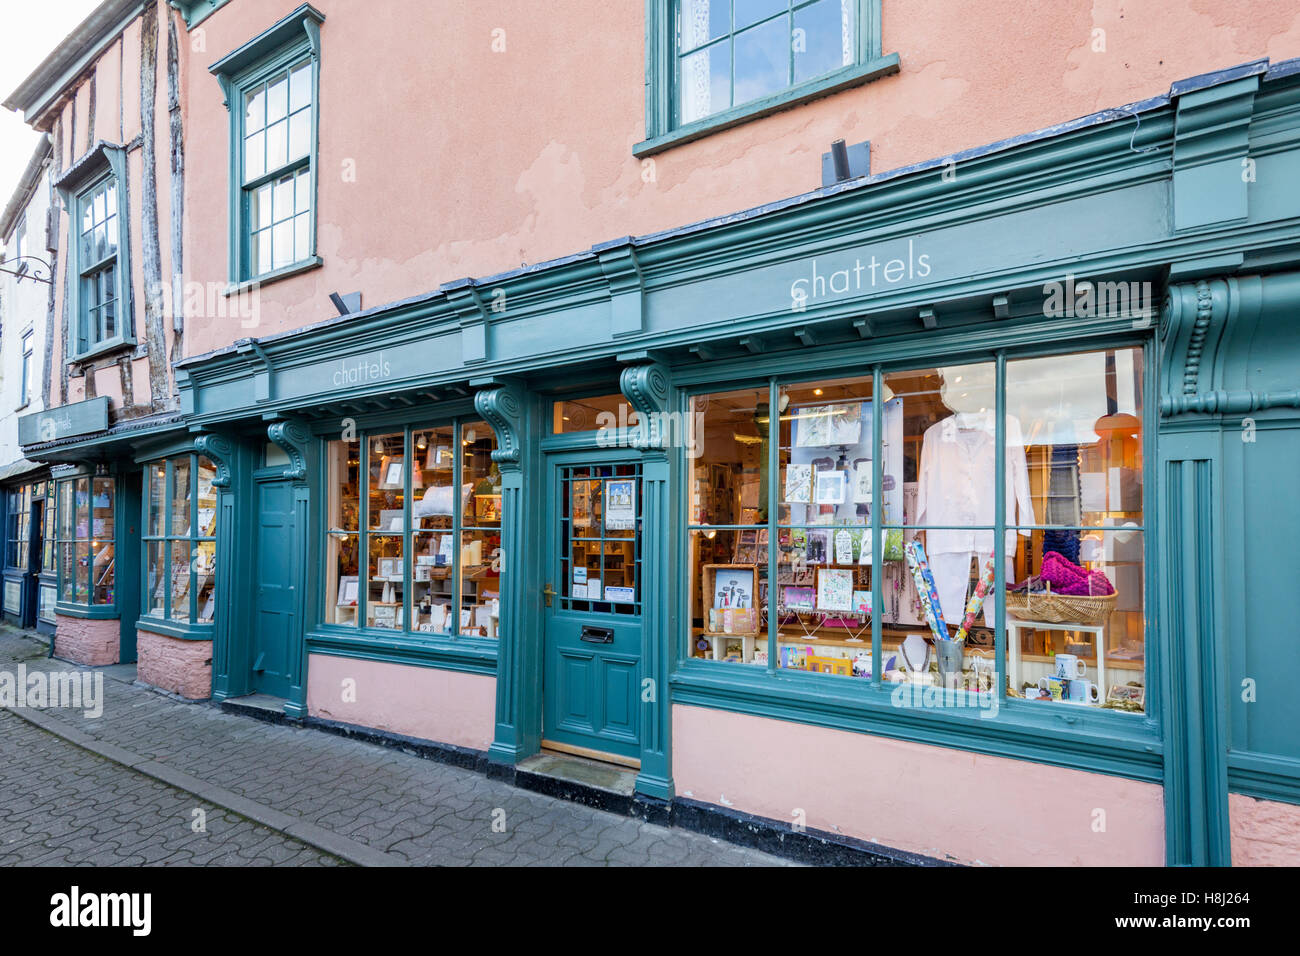 Independent shops in Hay on Wye, Brecknockshire, Wales, UK - Stock Image